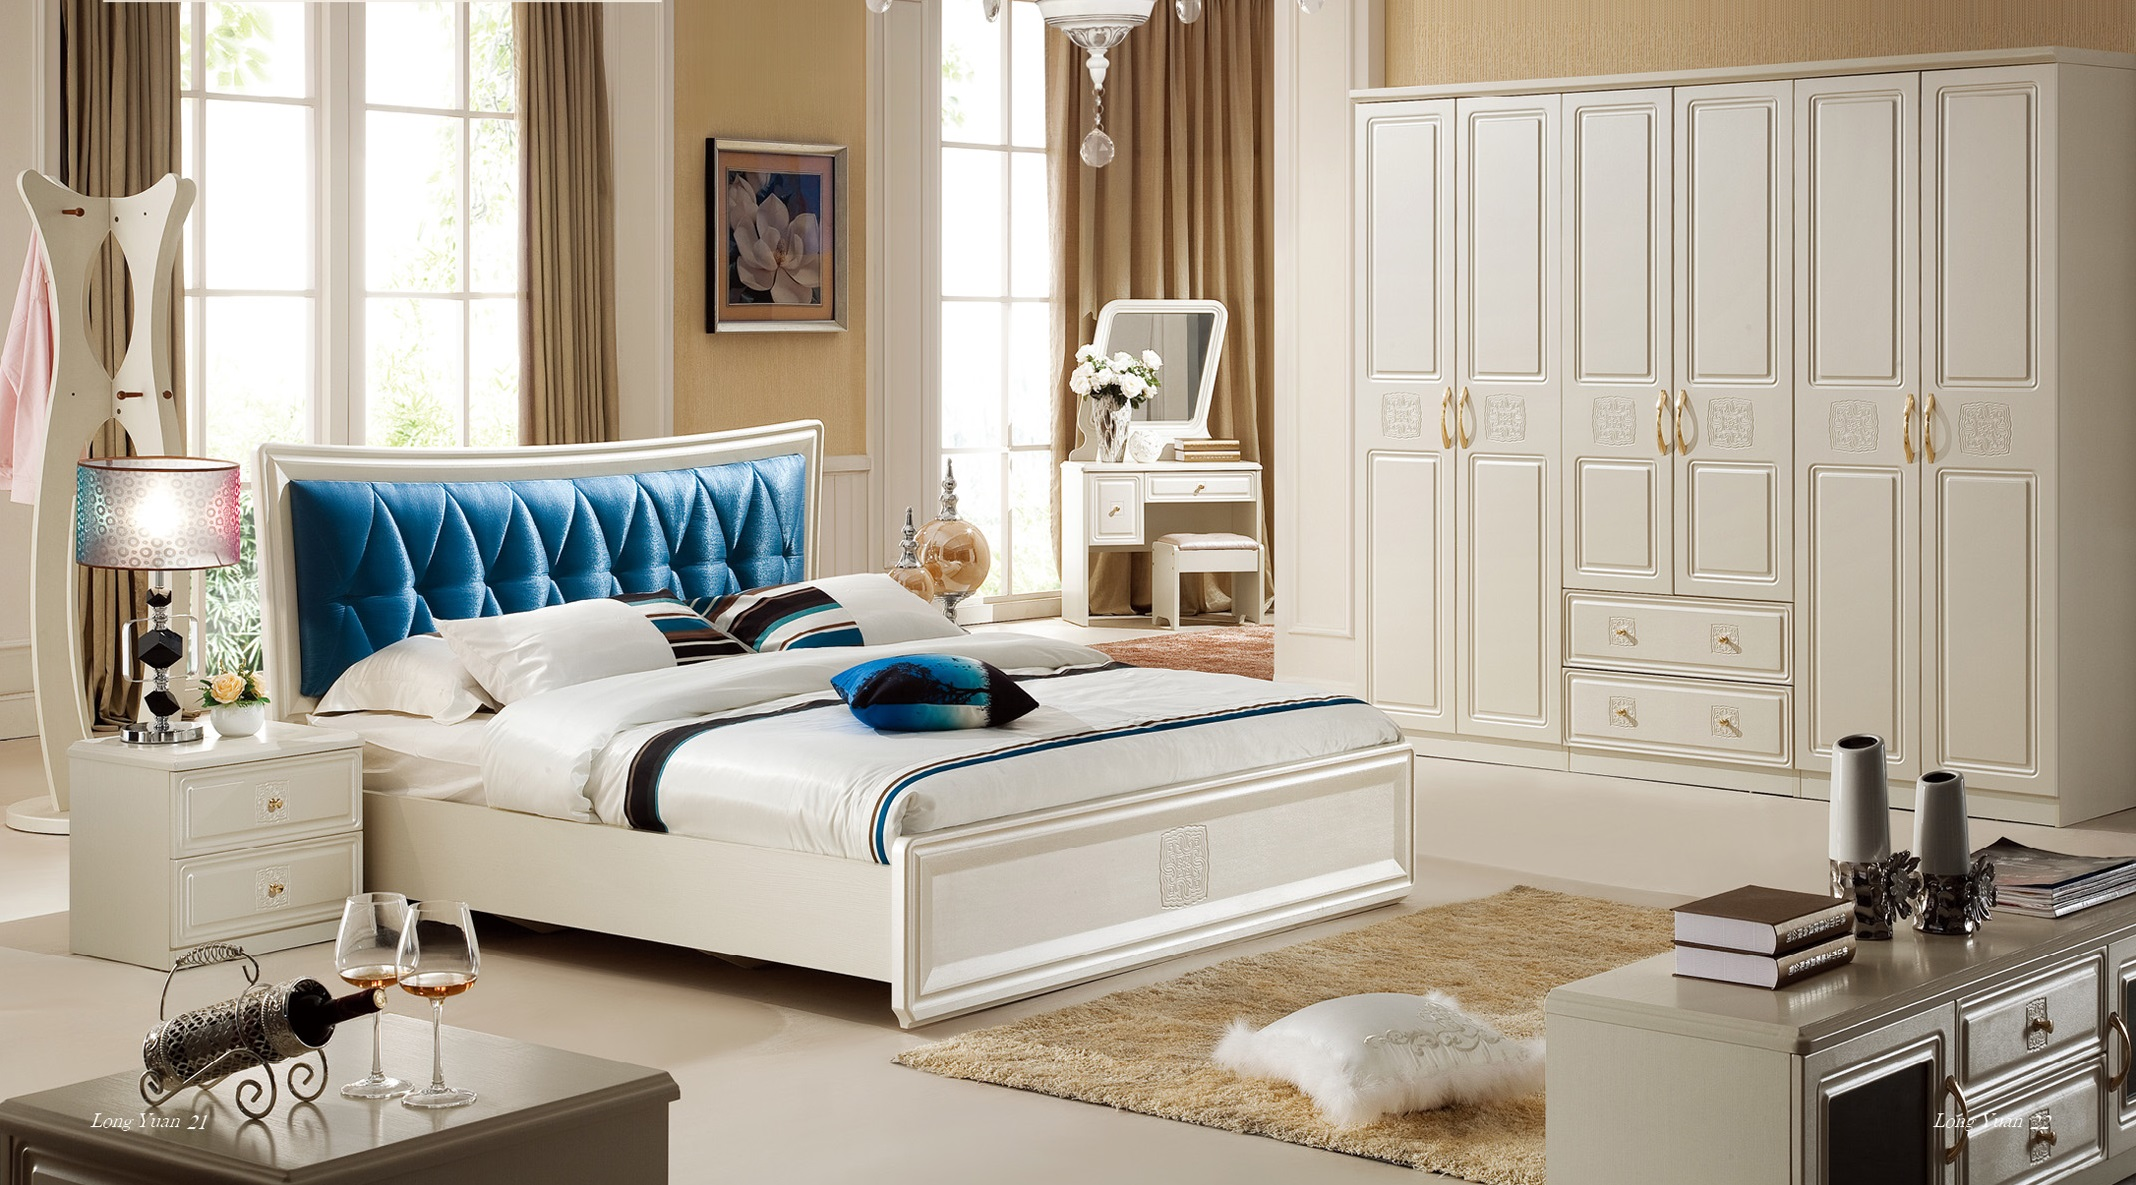 ELEGANCE-3 Home Set Price: 32.150.000 VND Bed-1980 x 2100 x 1150 mm Price: 11.000.000 VND Wardrobe cabinet - 2400 x 600 x 2200 mm Price: 16.000.000 VND Dressing table - 868 x 396 x 1490 mm Price: 3.000.000 VND Makeup chair - 430 x 330 x 390 mm Price: 650.000 VND Tab - 525 x 396 x 480 mm Price: 1.500.000 VND